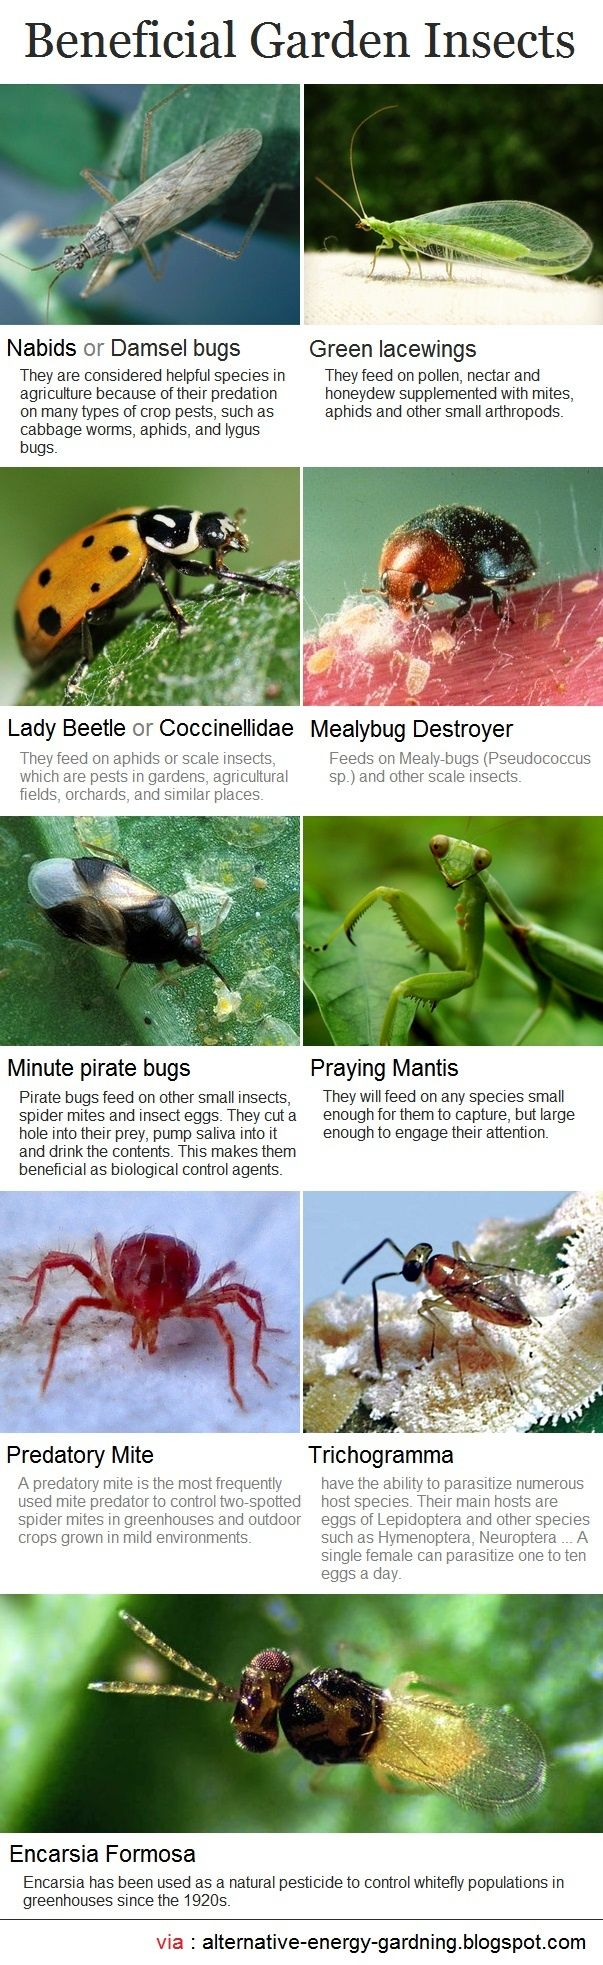 Alternative Gardning: Beneficial Garden Insects